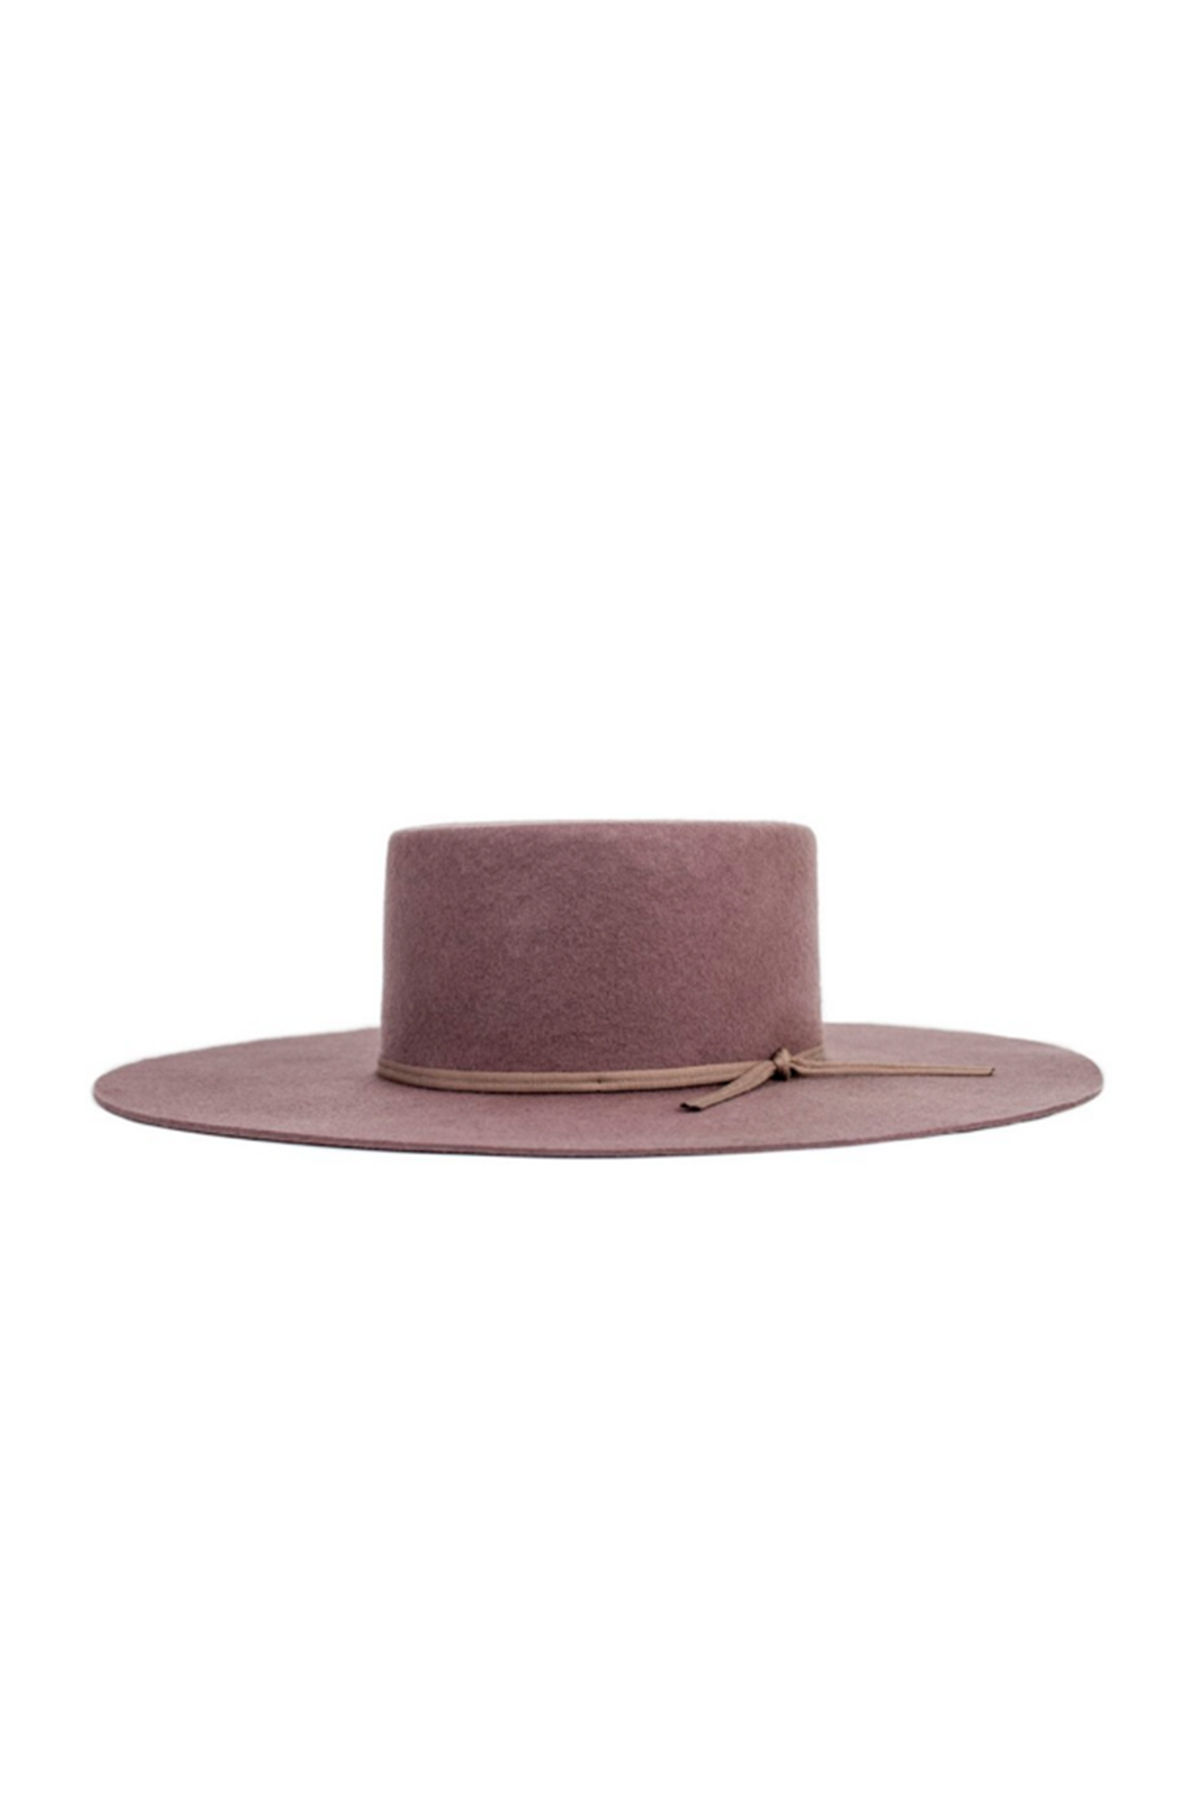 d71434fdde5e9 Brixton Buckley Hat in Brown - Lyst